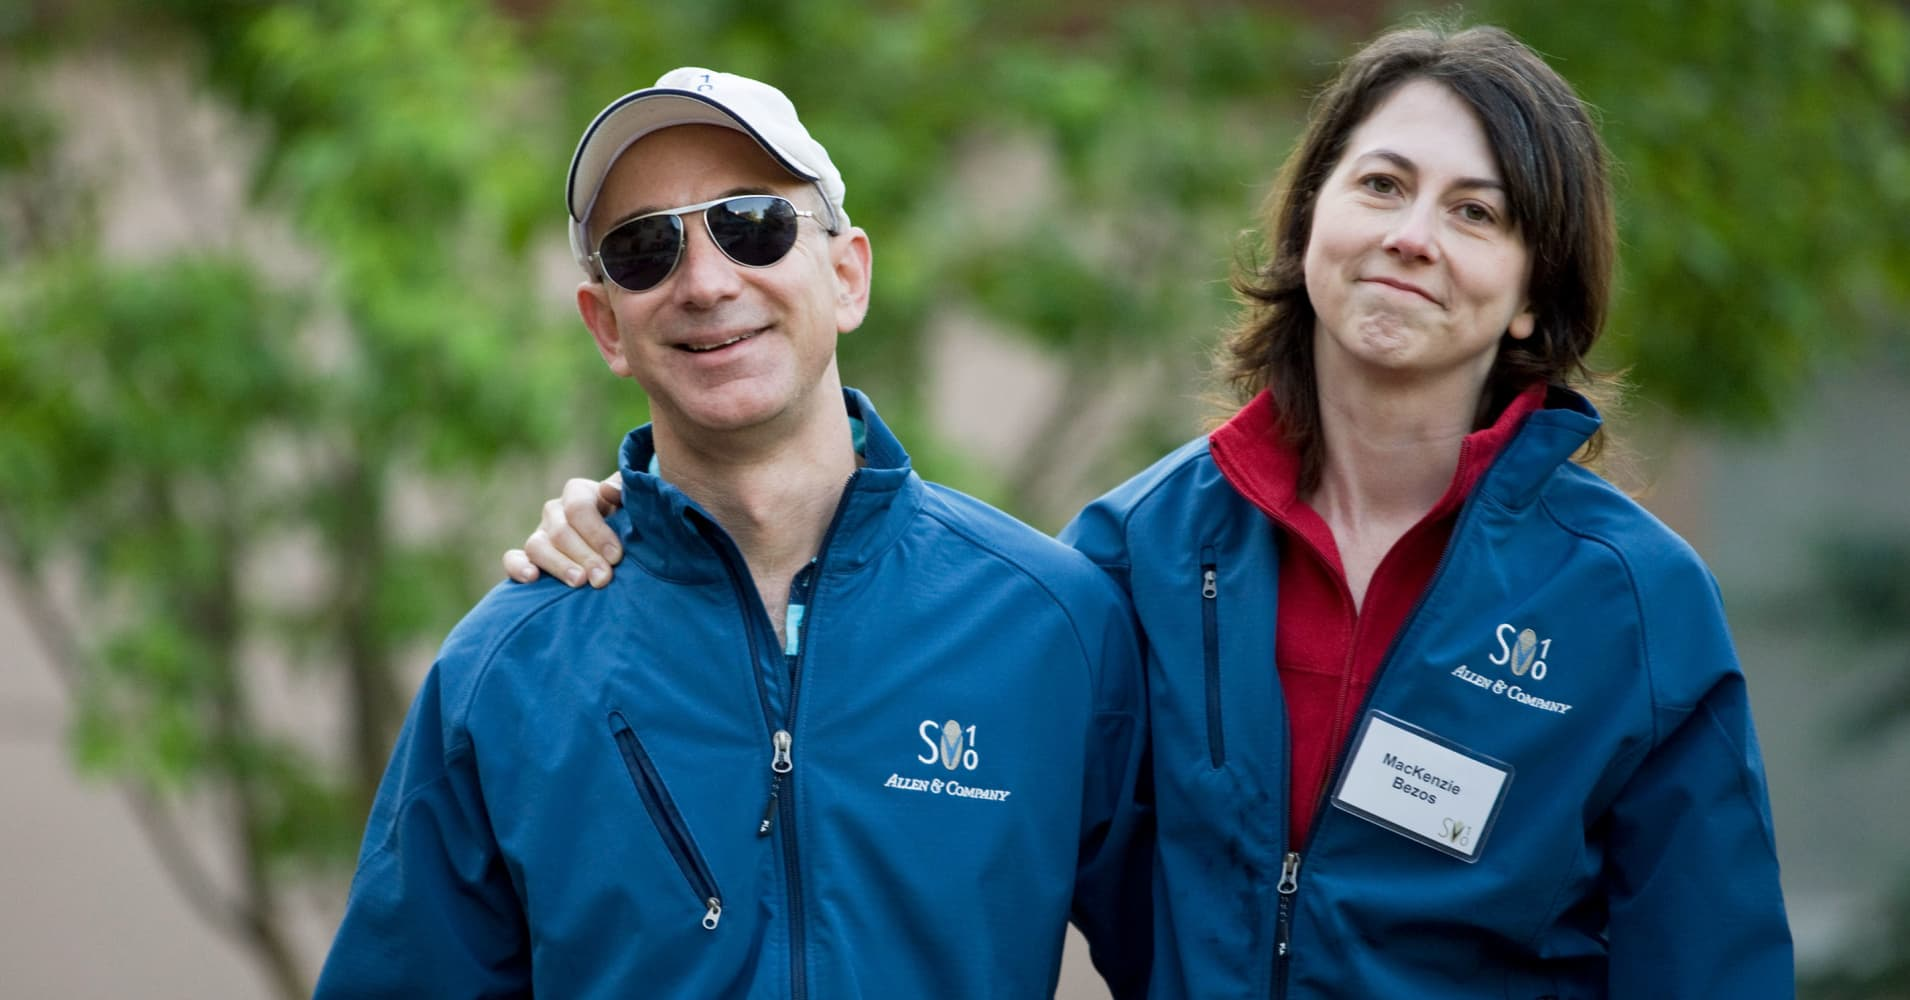 Jeff and MacKenzie Bezos didn't get a prenup—do you need one? Here's what experts say